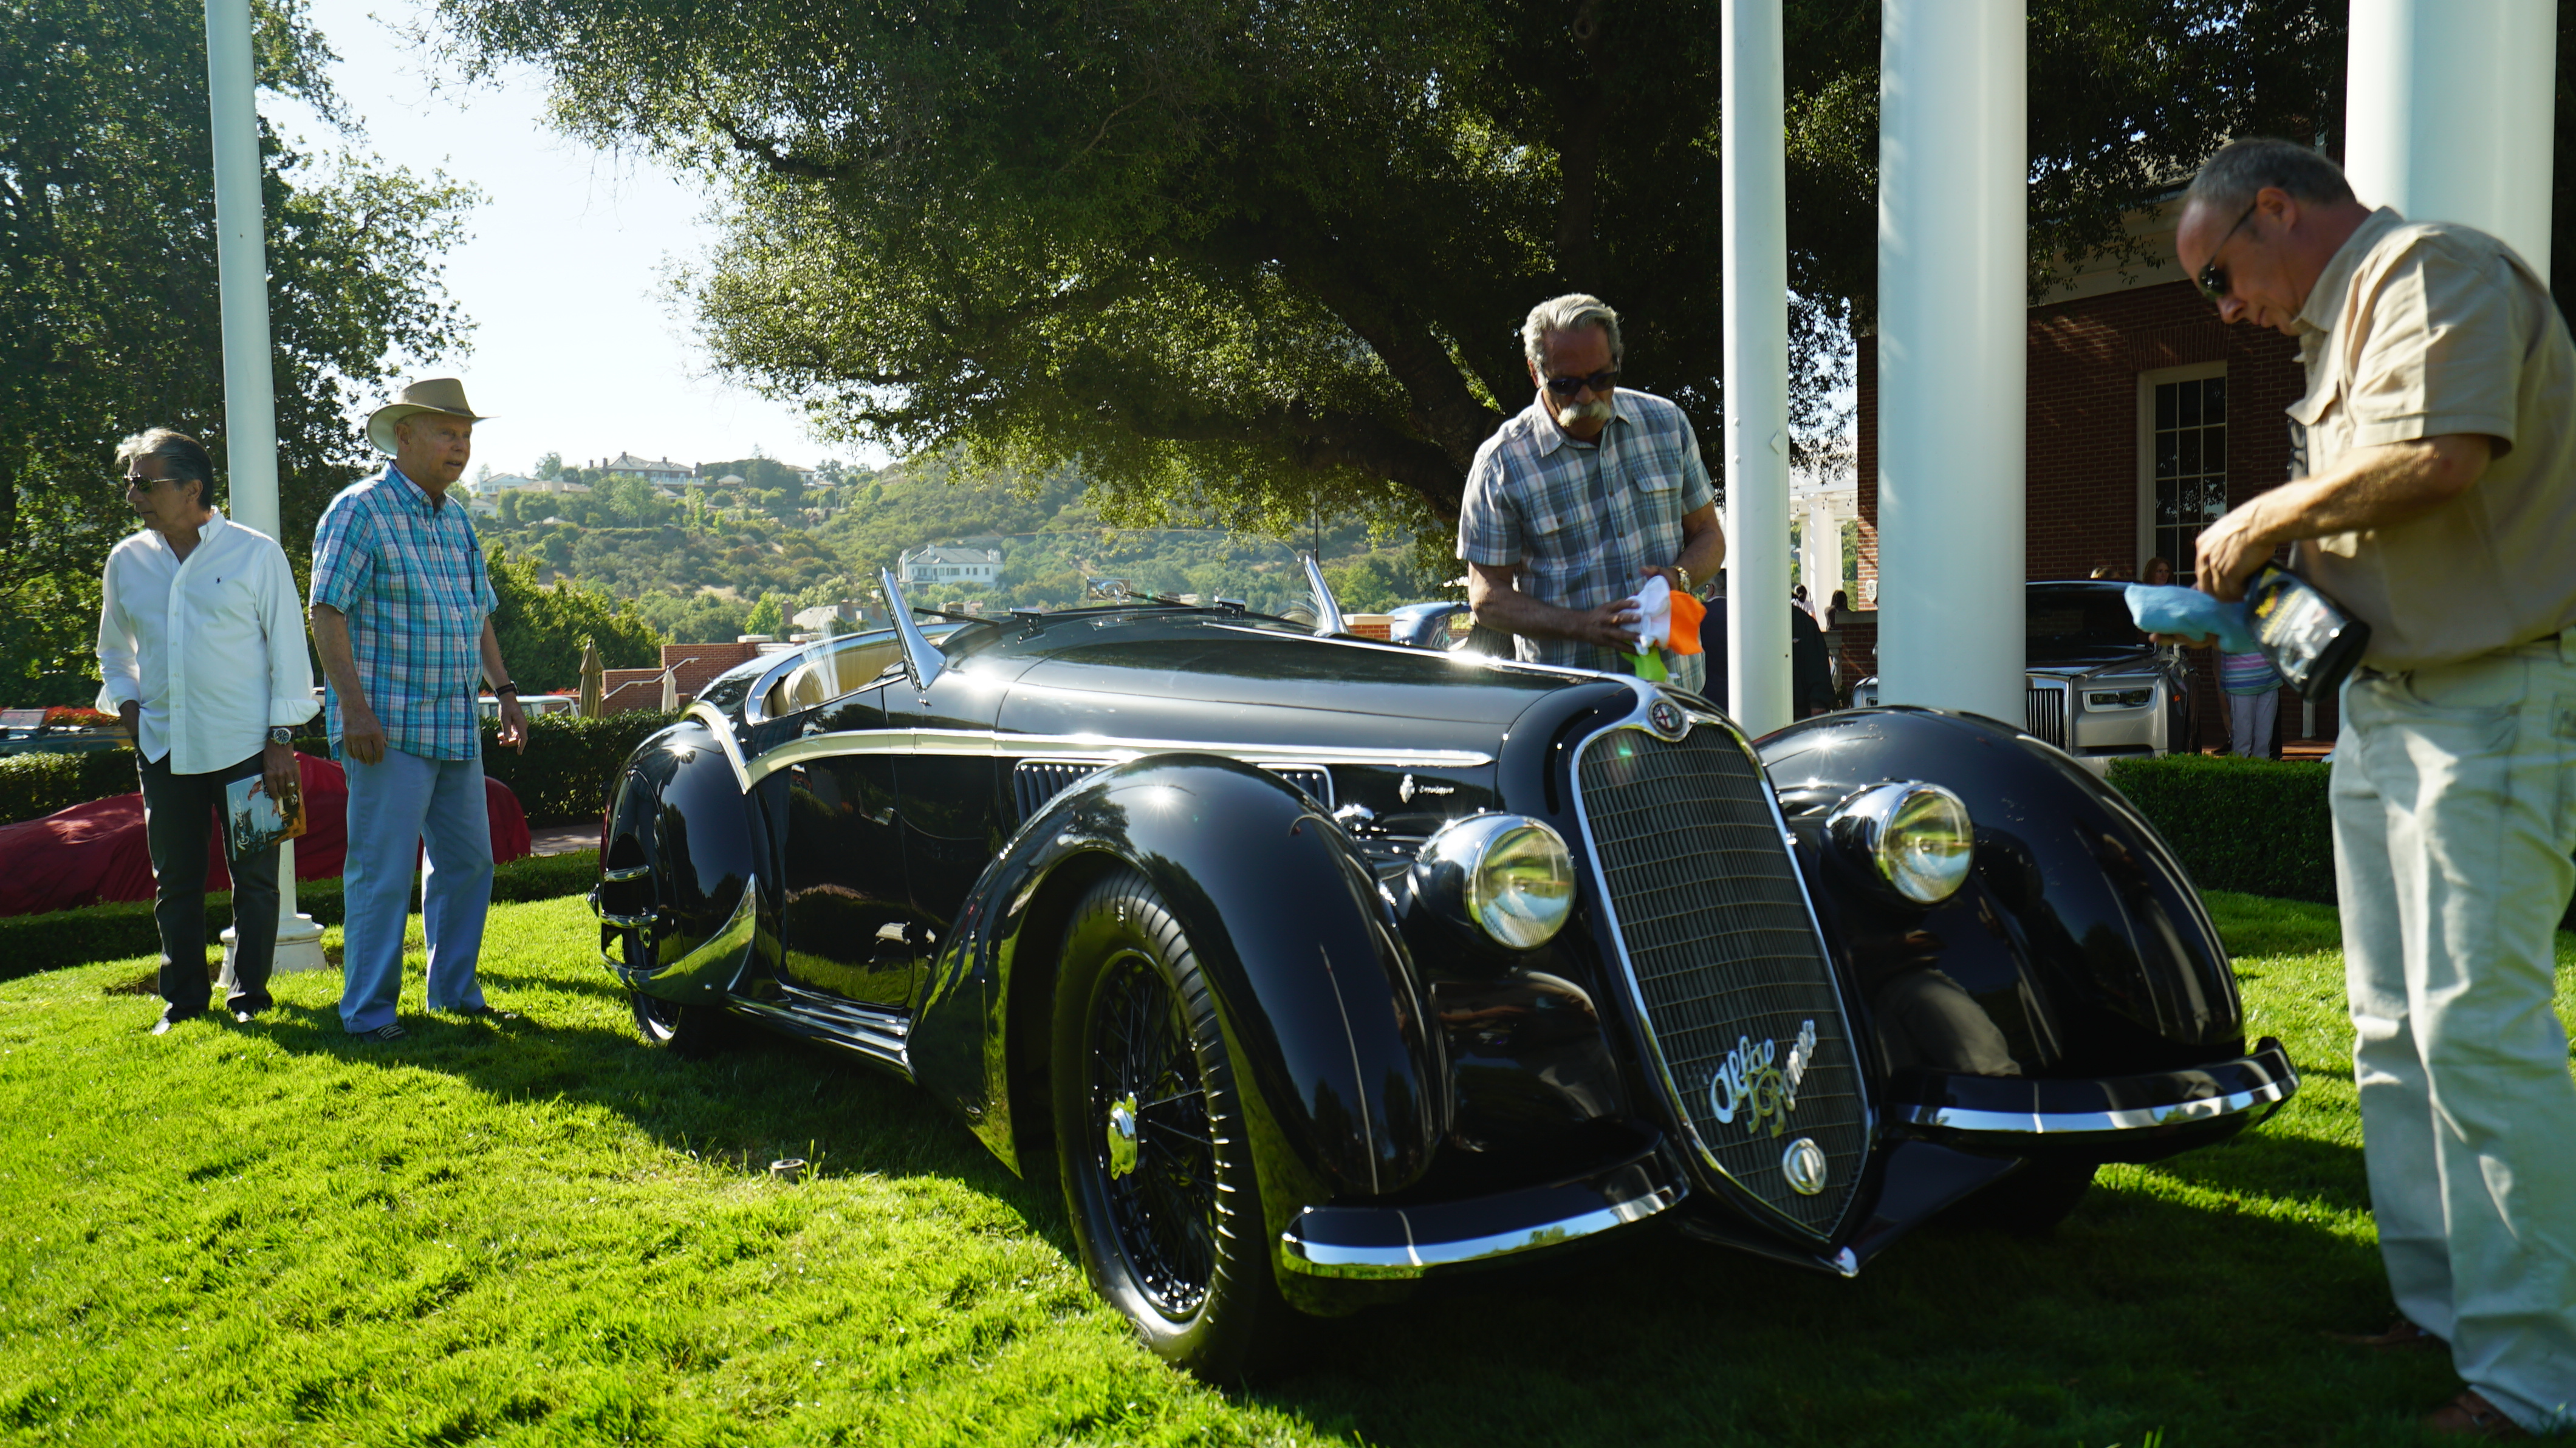 The 1938 Alfa Romeo 8C Corto Touring Spider owned by collector Ray Scherr.